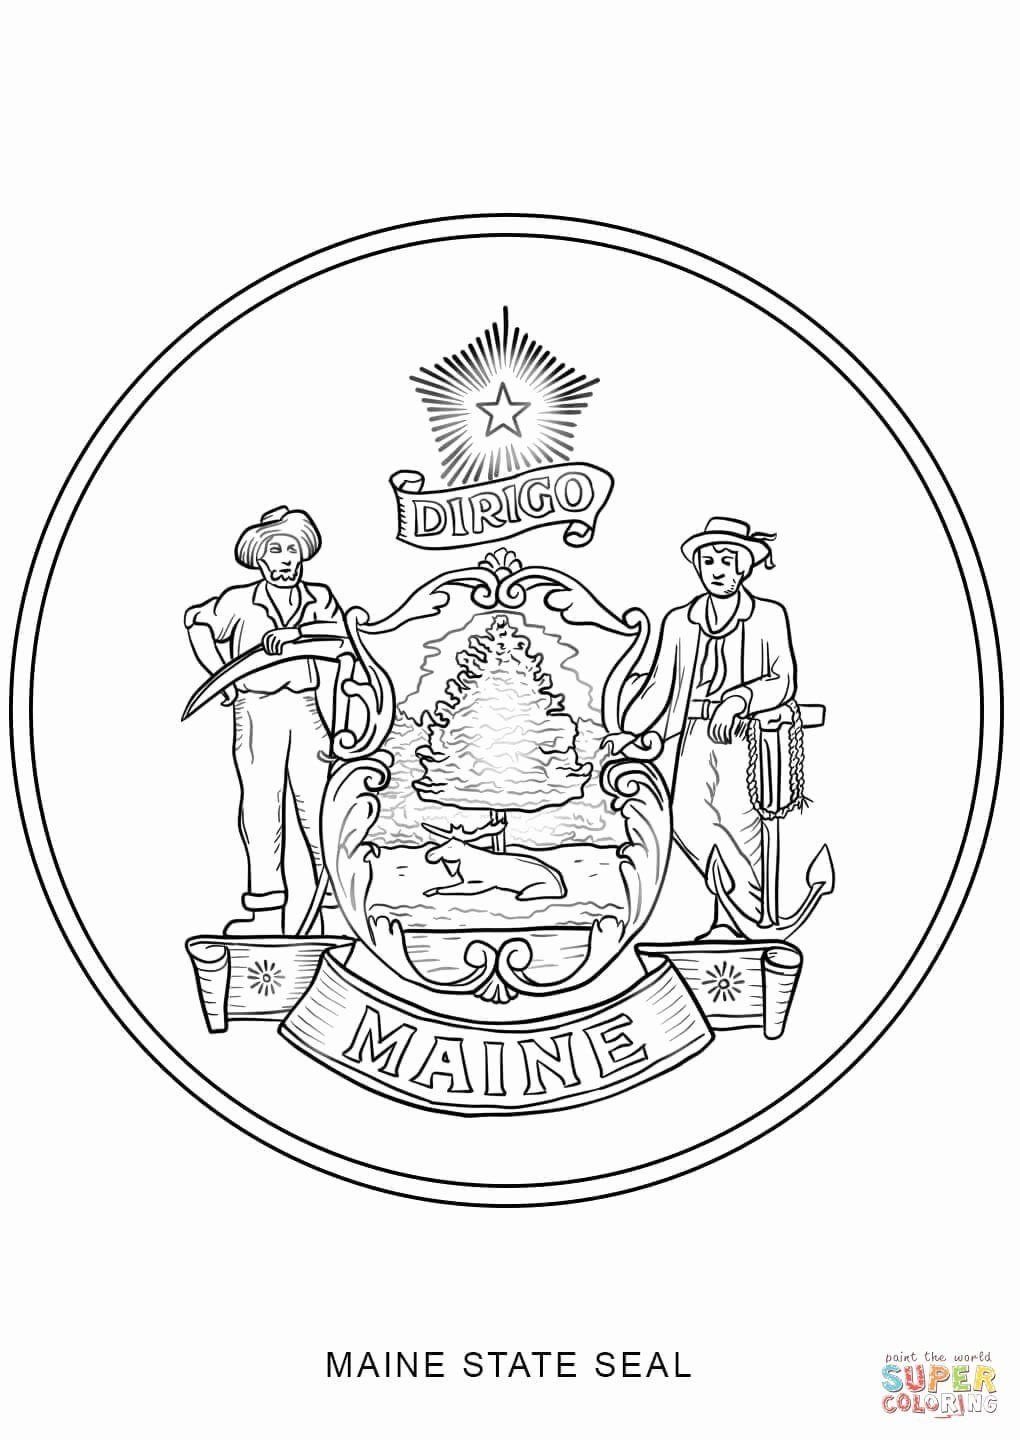 Maine State Flower Coloring Page Fresh Maine State Seal Coloring Page Flag Coloring Pages Coloring Pages Flower Coloring Pages